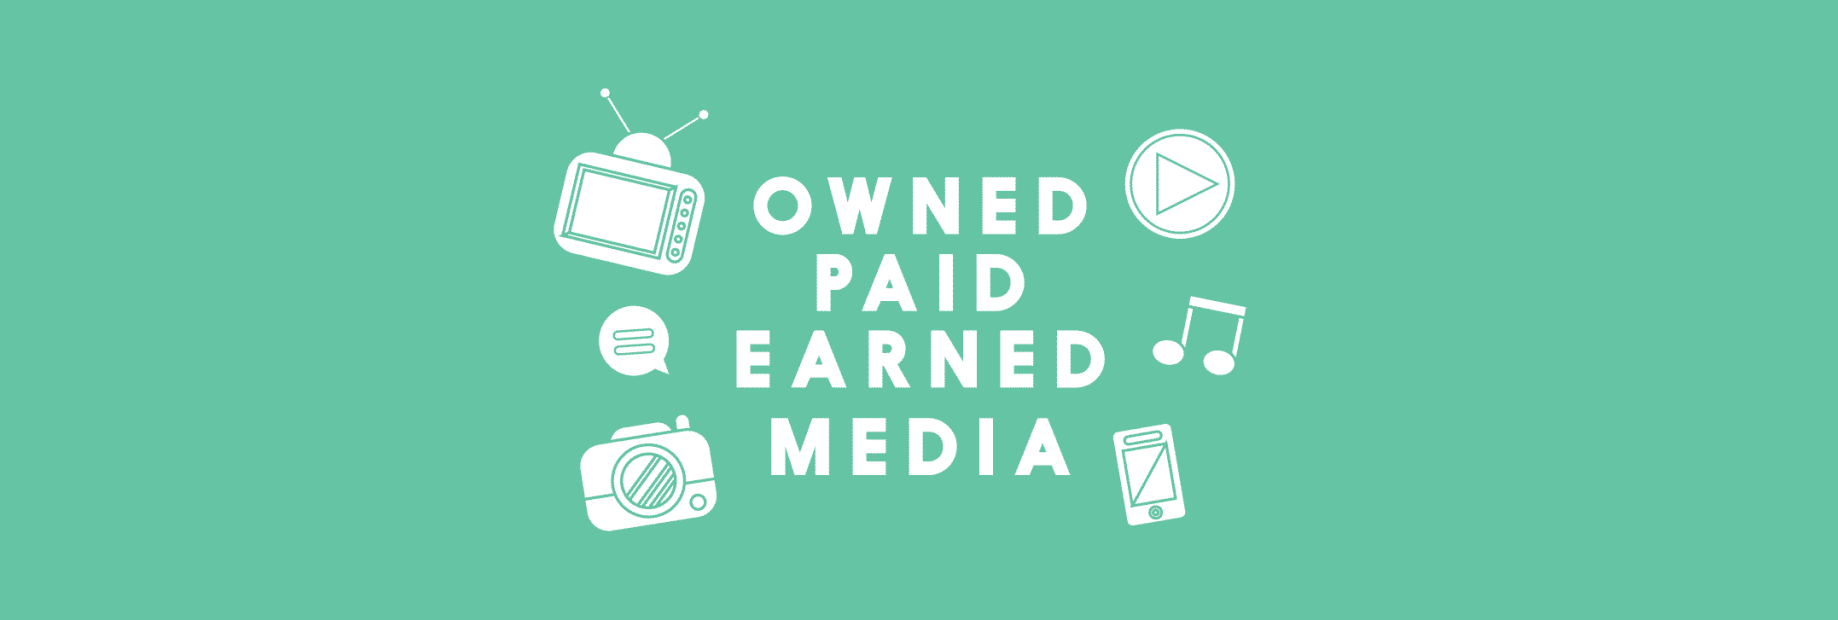 Owned, earned and paid media